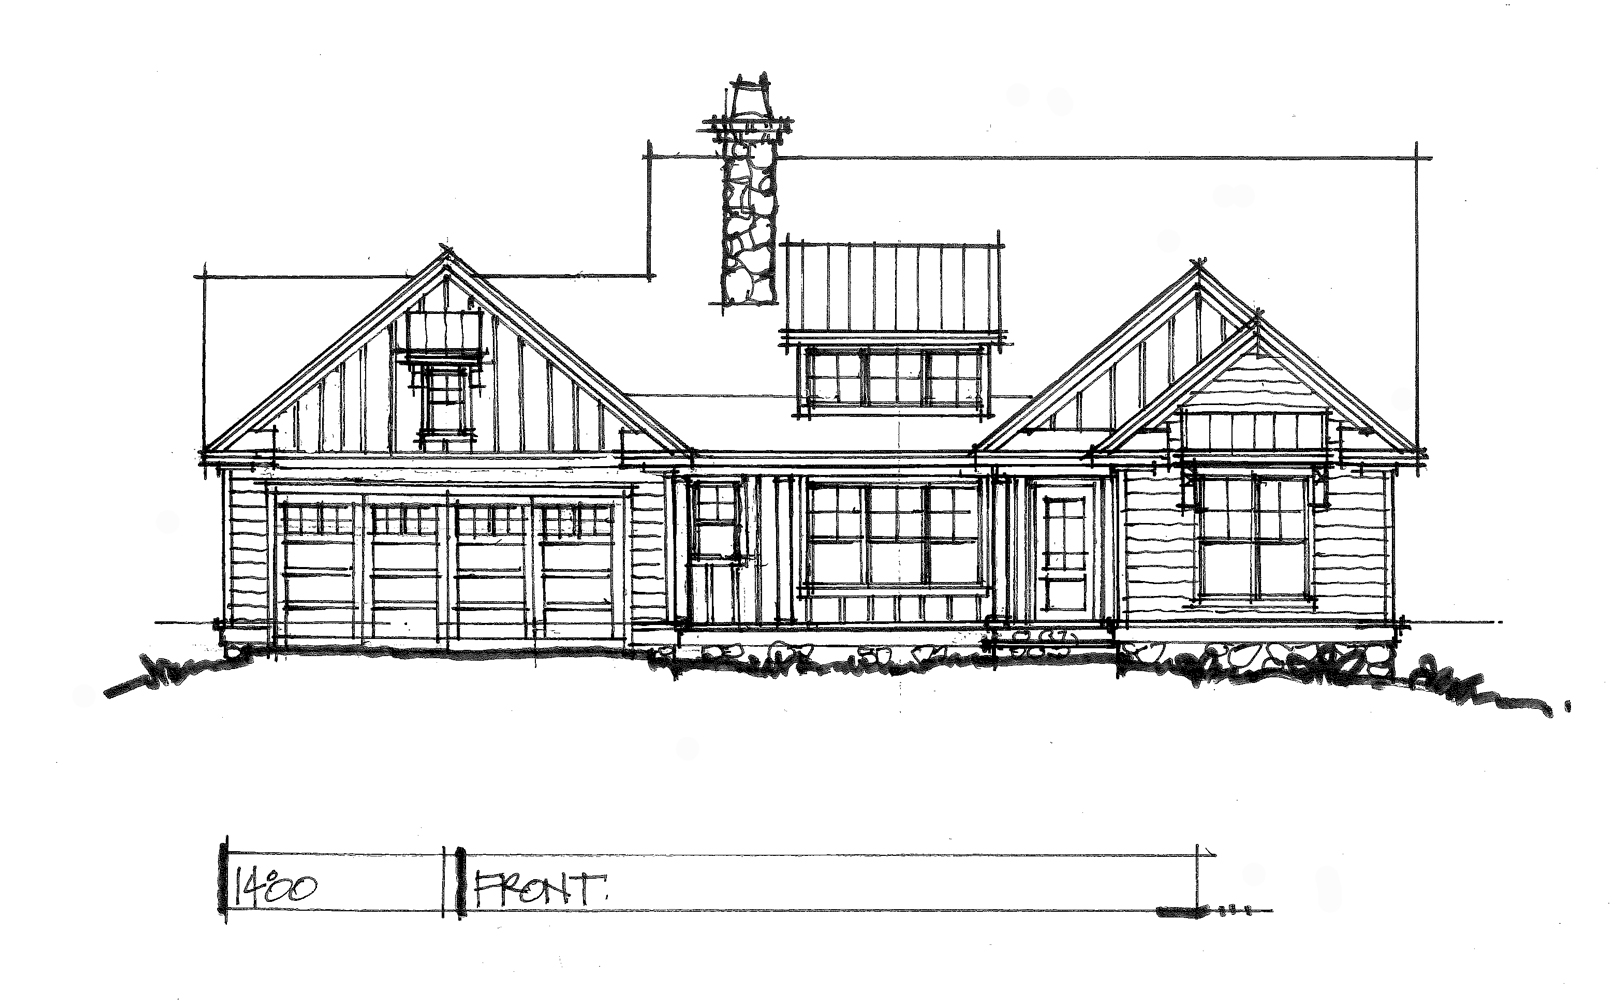 Check out the front elevation for conceptual house plan 1480.